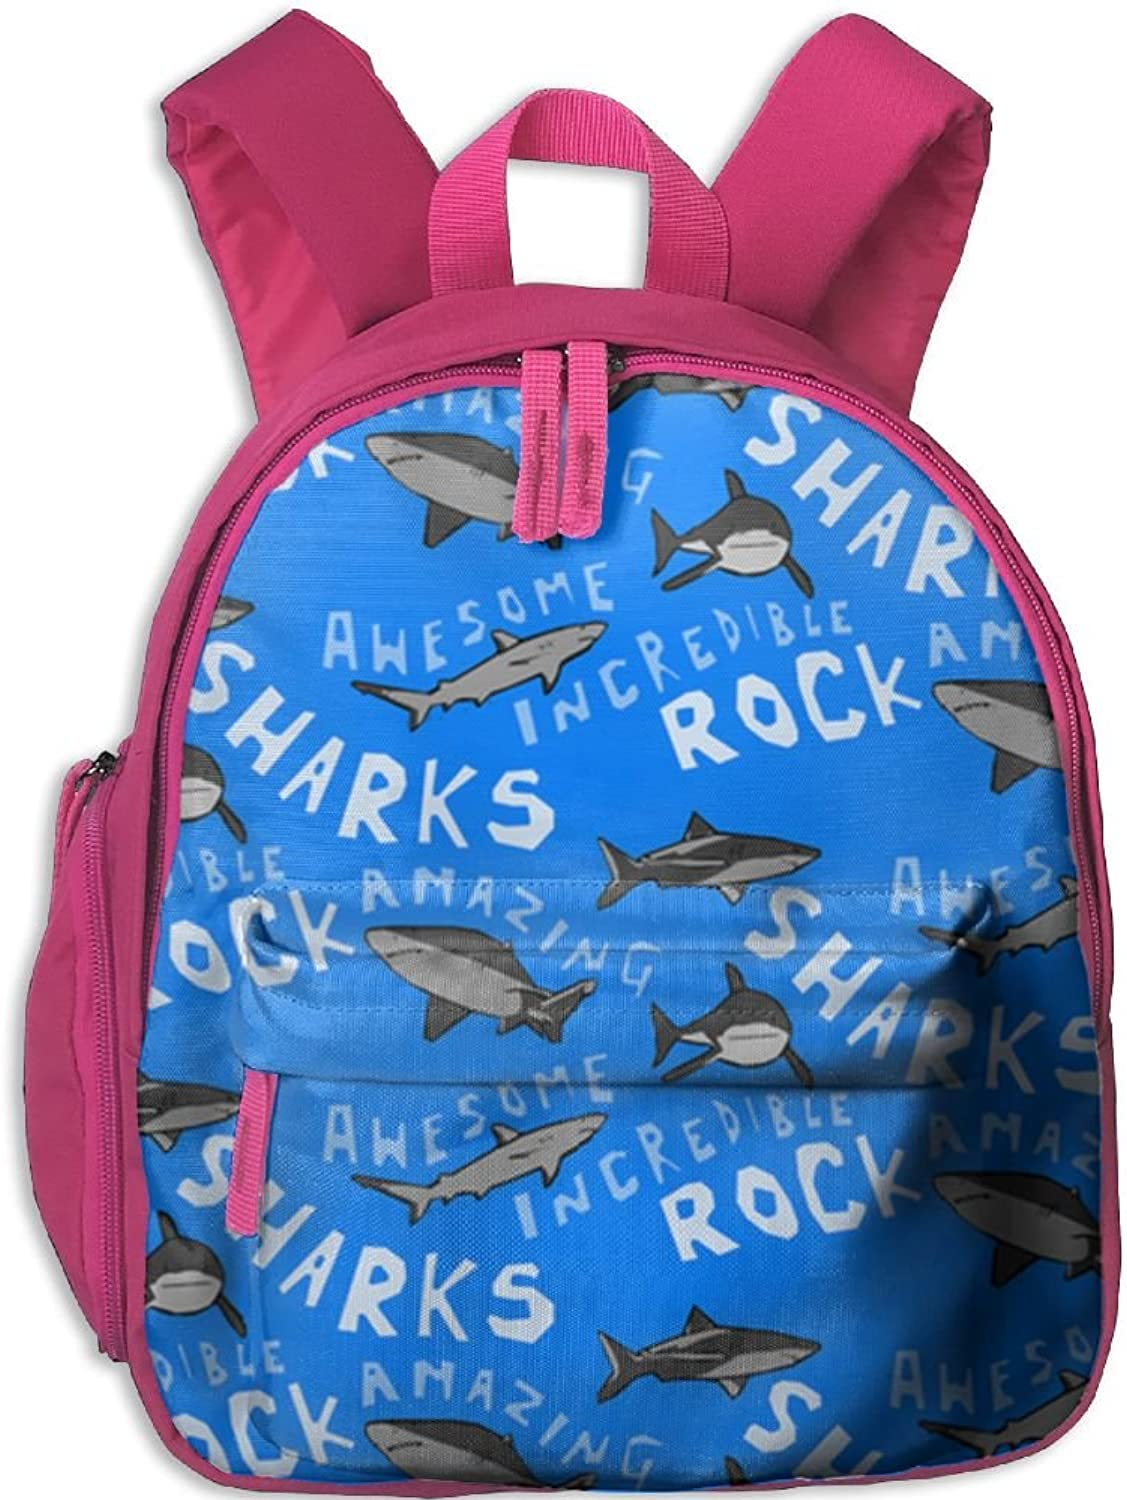 Pinta Sharks Play Cub Cool School Book Bag Backpacks for Girl's Boy's